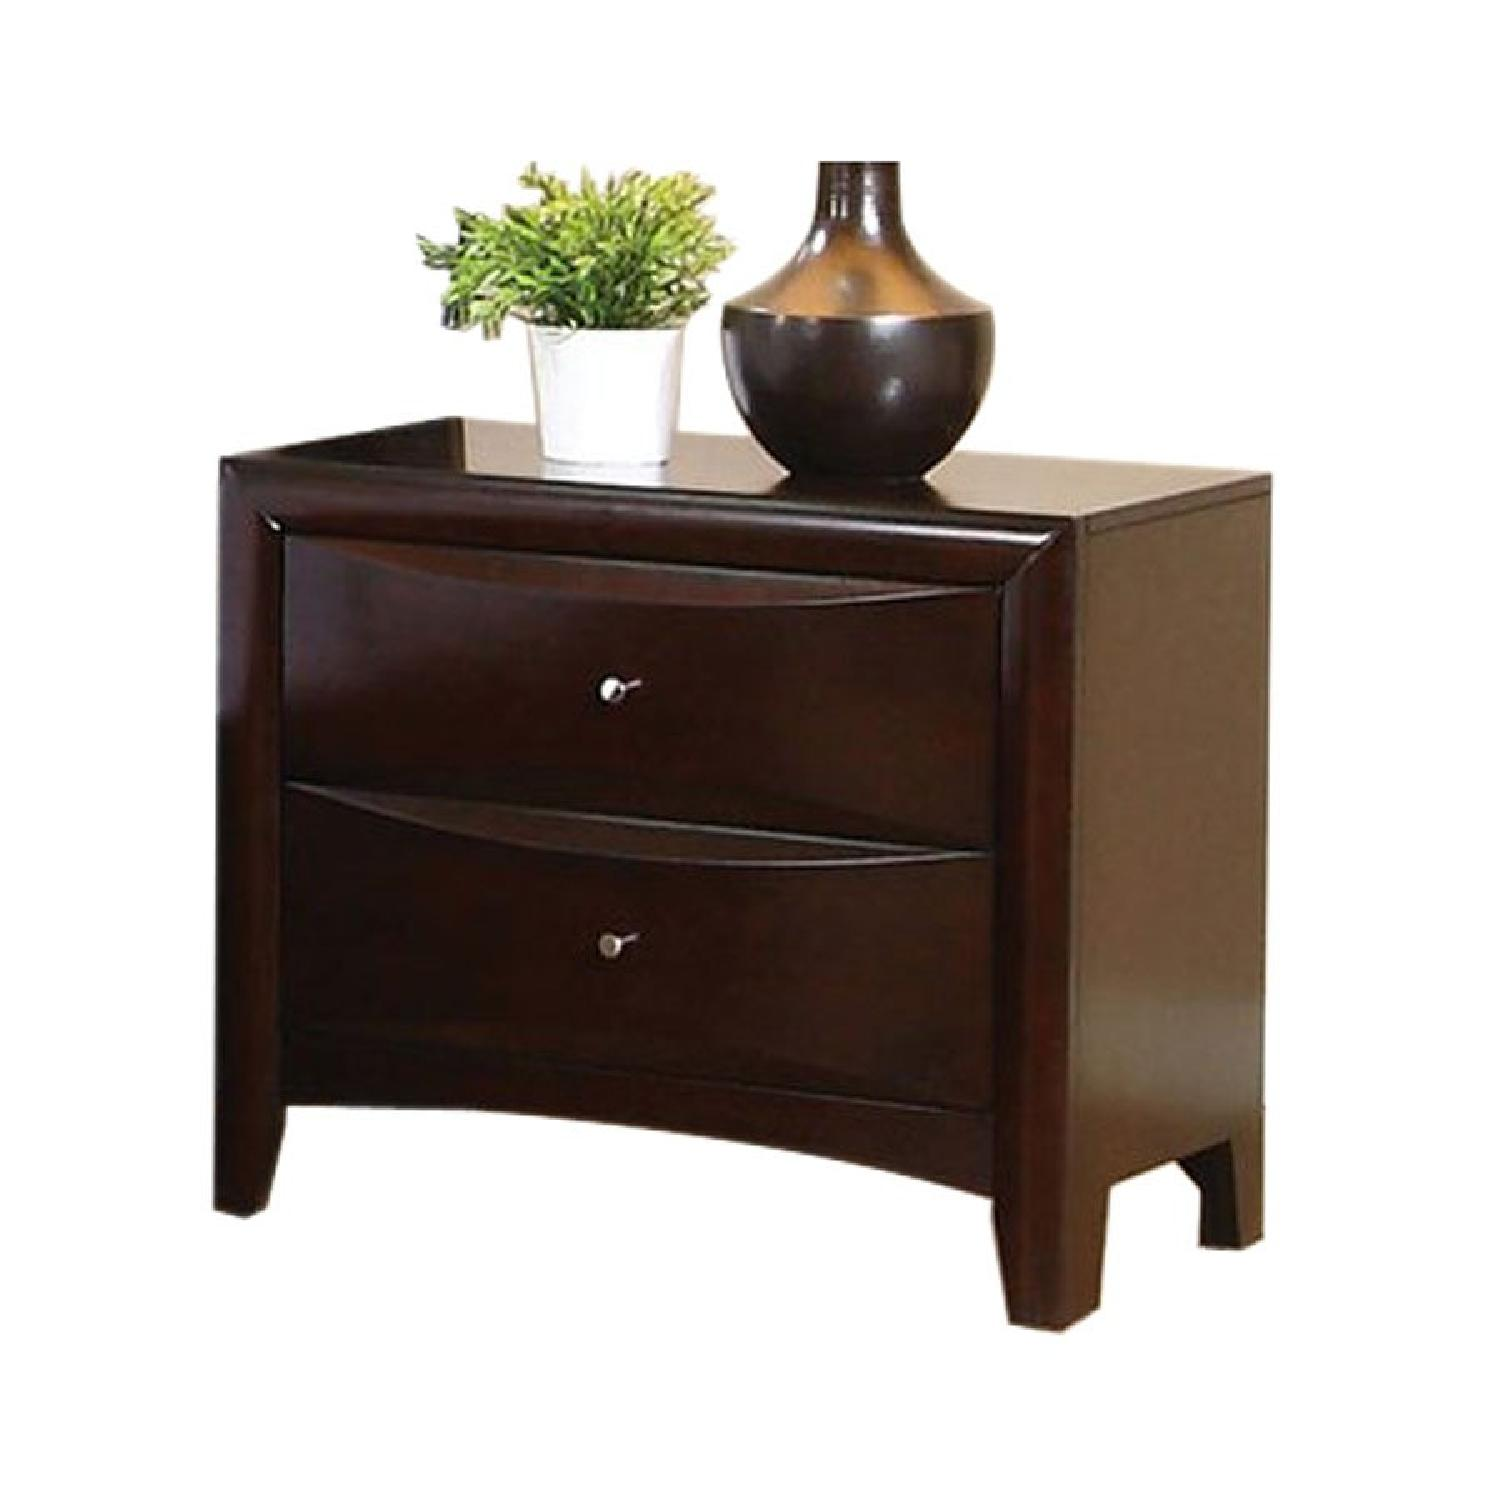 2 Drawer Nightstand in Cappuccino Finish